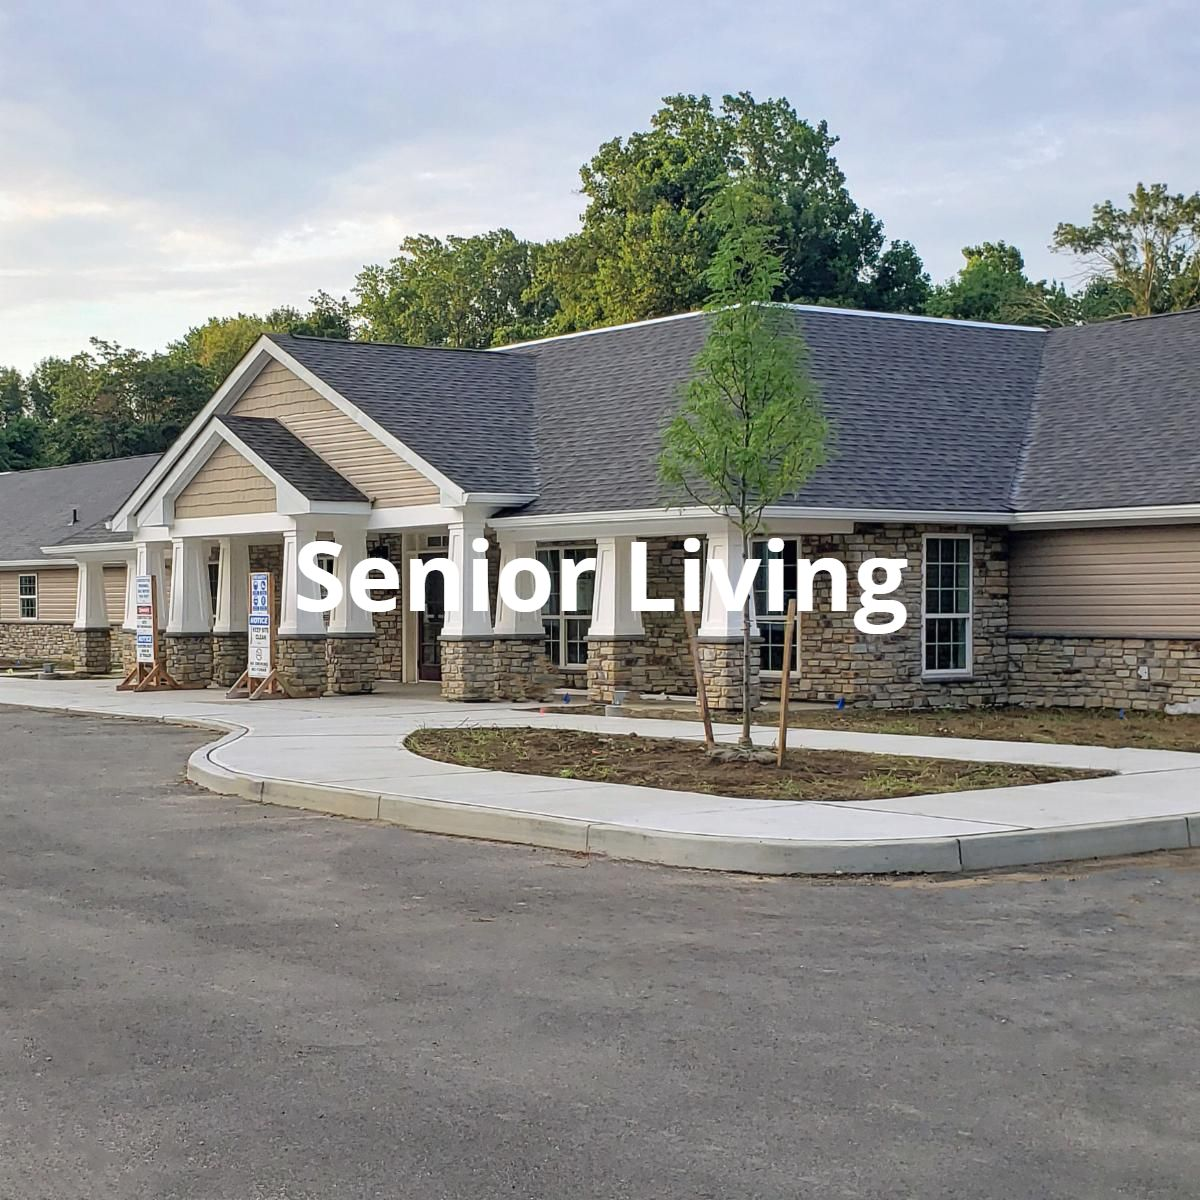 click to view more Senior Living projects